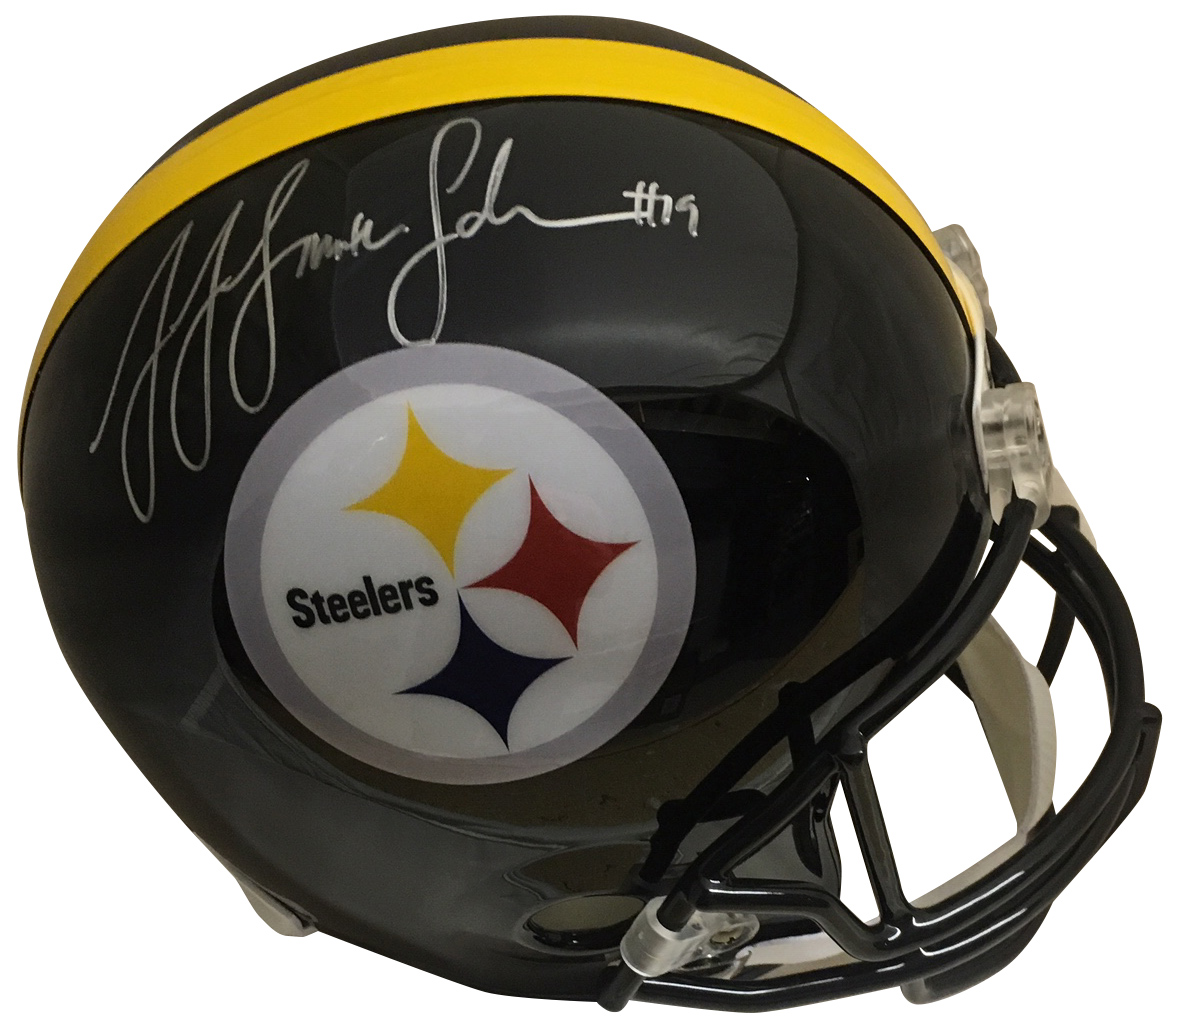 JuJu Smith Schuster Autographed Pittsburgh Steelers Signed Full Size Football Helmet PSA DNA COA Steelers star wide receiver JuJu Smith-Schuster has autographed this officially licensed Steelers full size replica helmet.  Autograph is authenticated by PSA/DNA, the world's leading authenticator of sports autographs. Comes with their unique sticker # fixed to the item and verified on their website. Also, comes with their certificate of authenticity with same matching # Receive exact item shown.